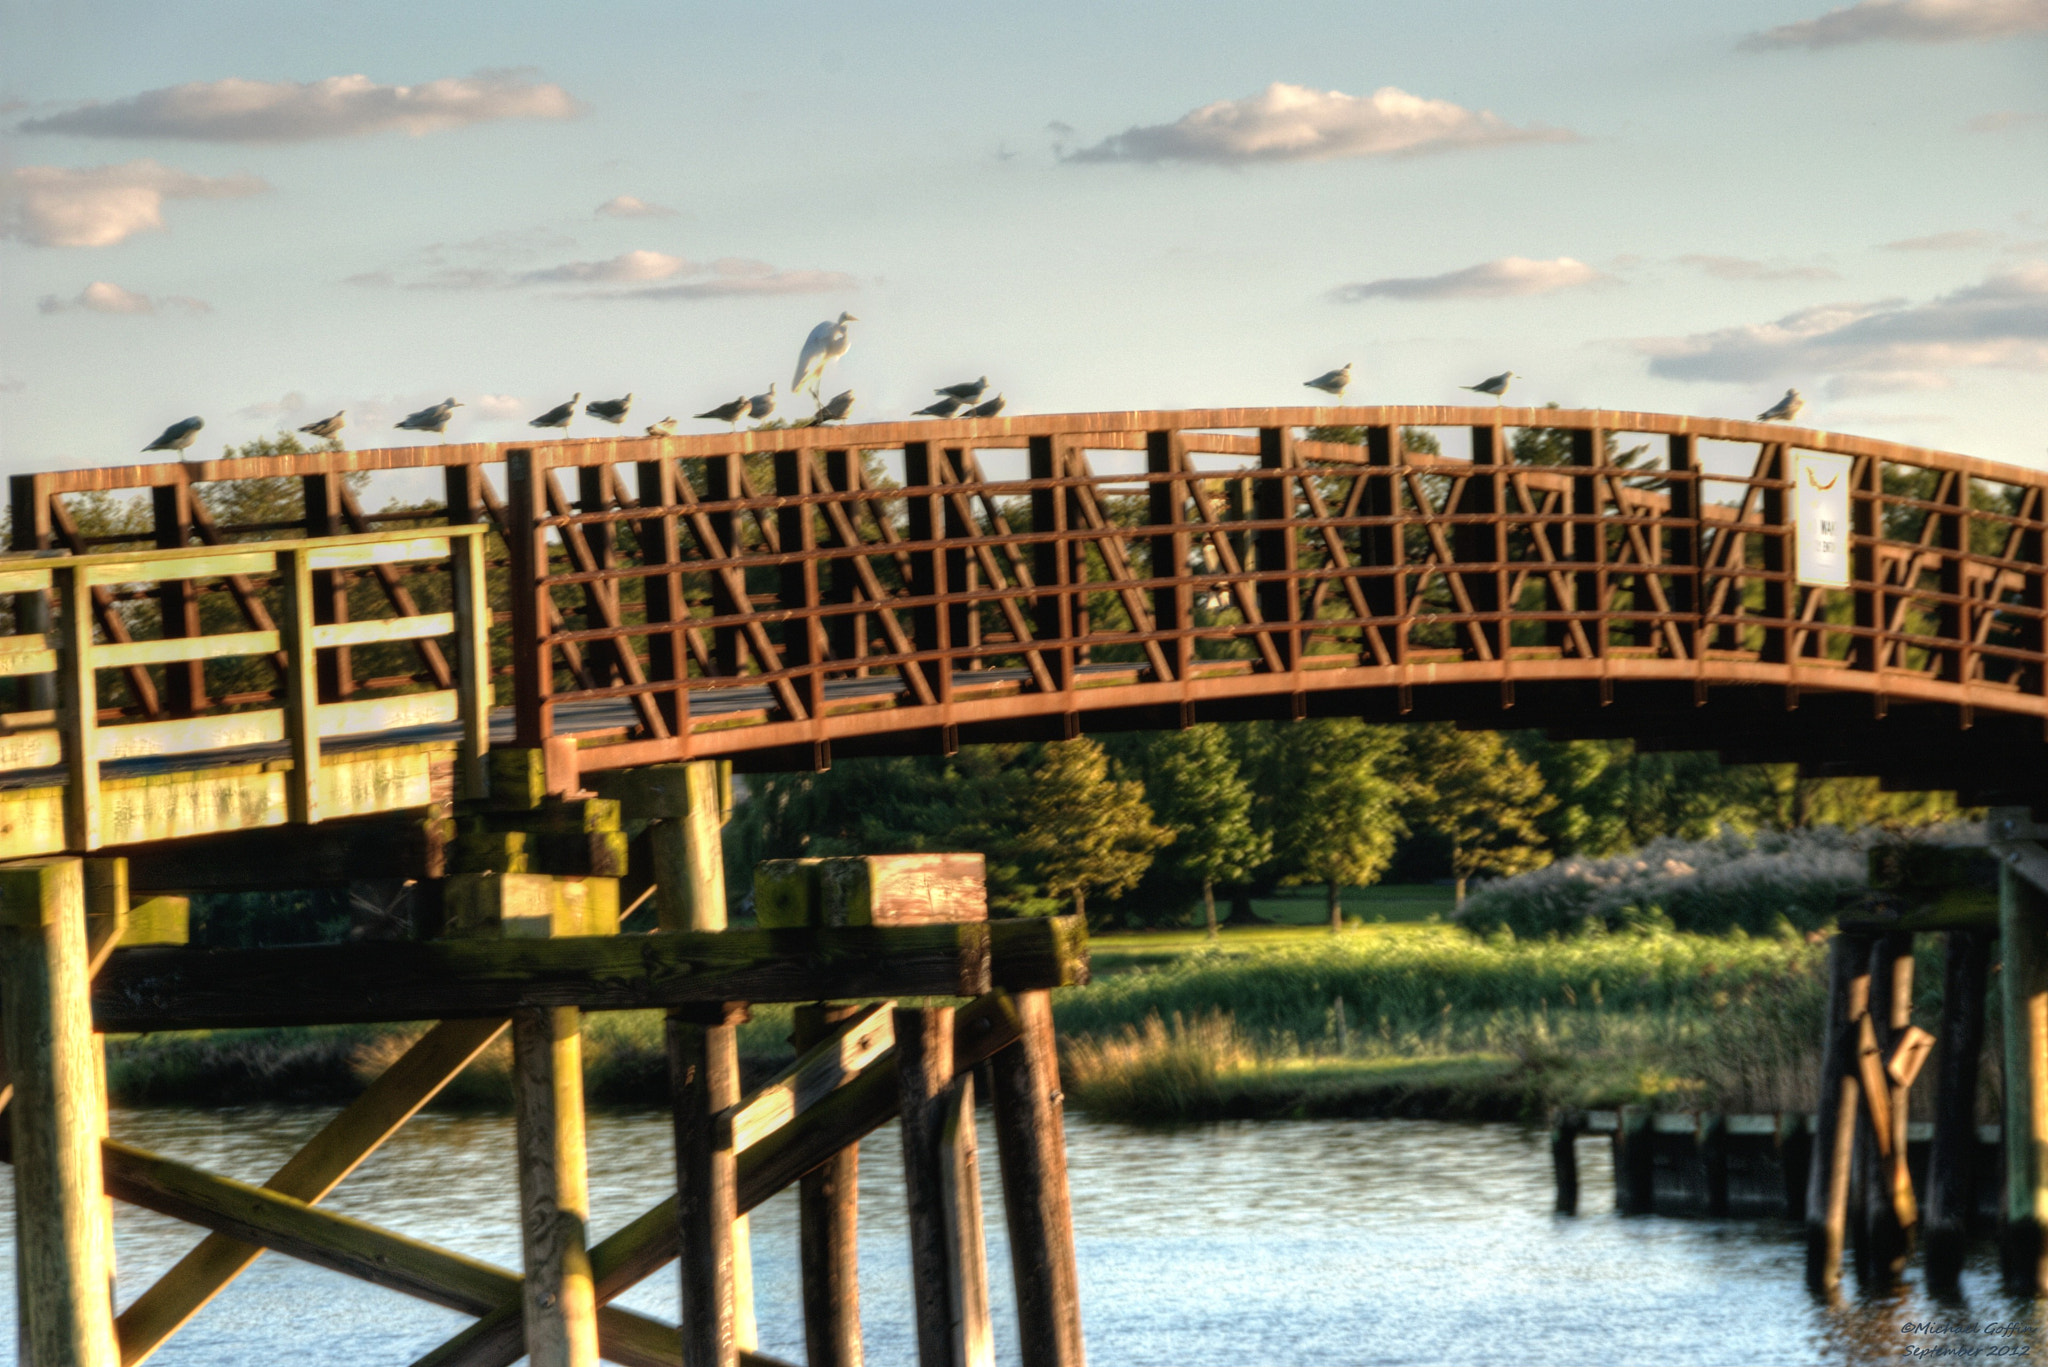 Photograph Birds on a bridge at Dusk by MICHAEL GOFFIN on 500px